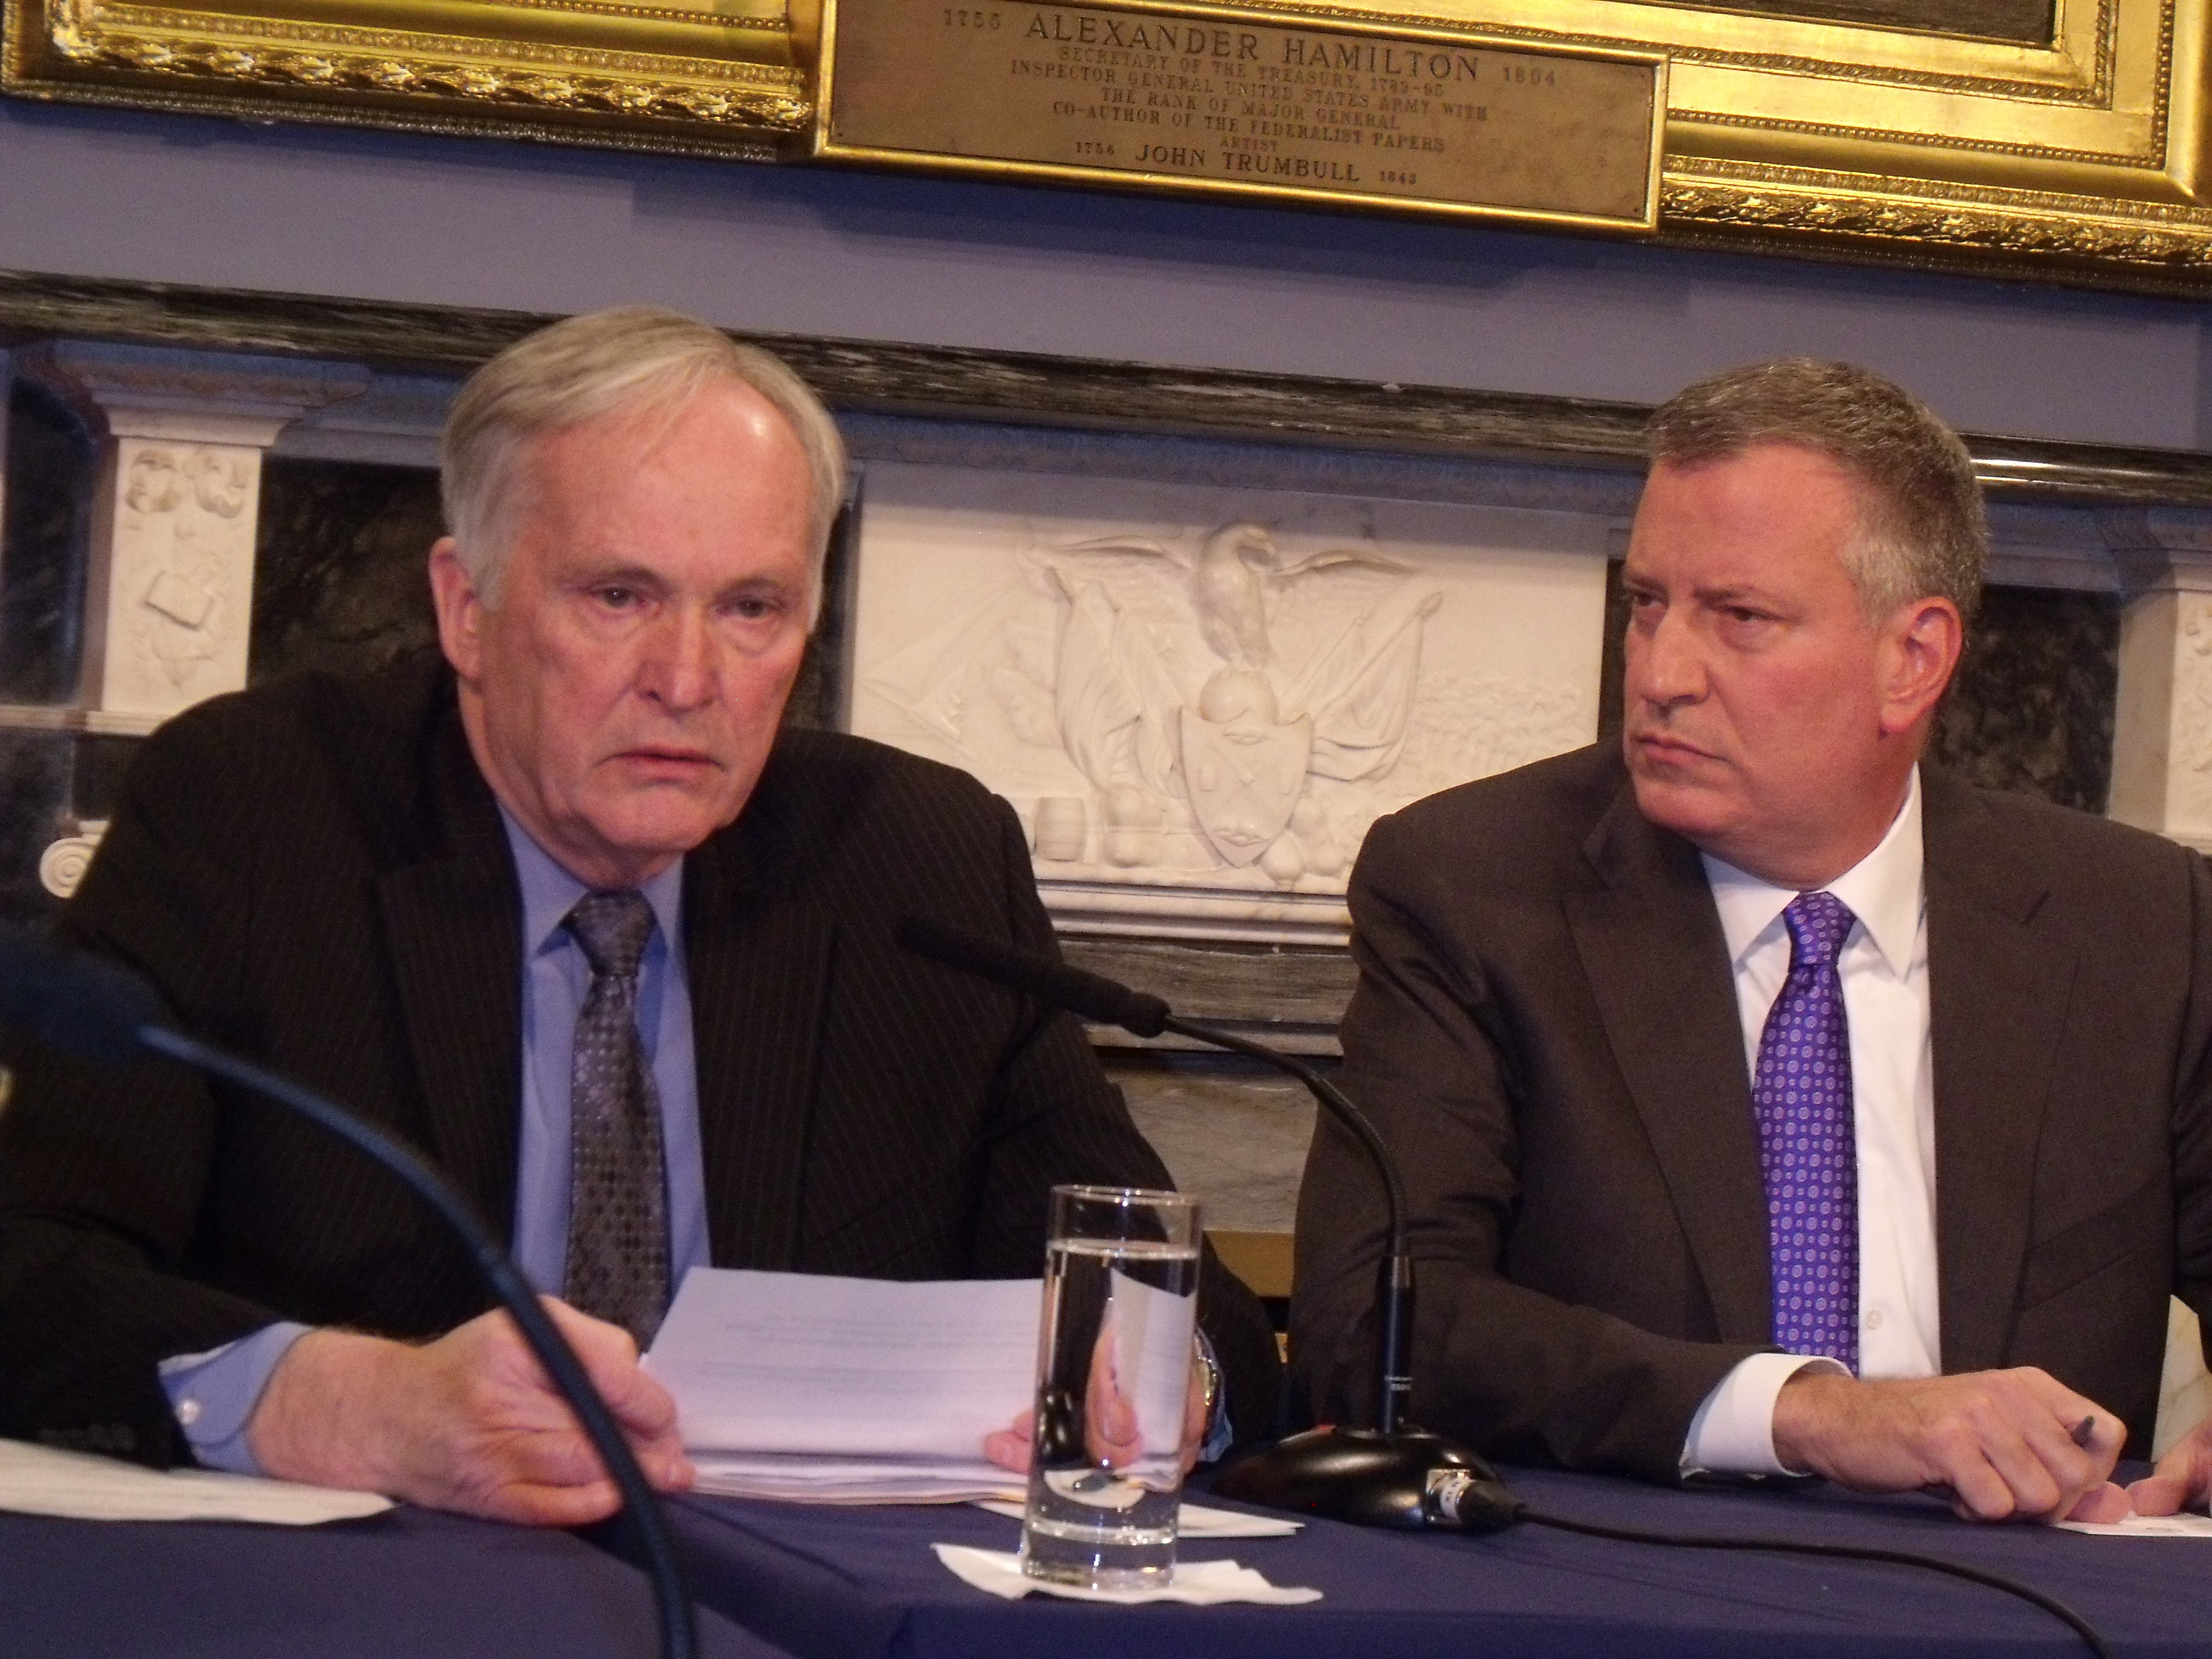 Correction Commissioner Joseph Ponte and Mayor Bill de Blasio at a roundtable discussion today. (Photo: Jillian Jorgensen)